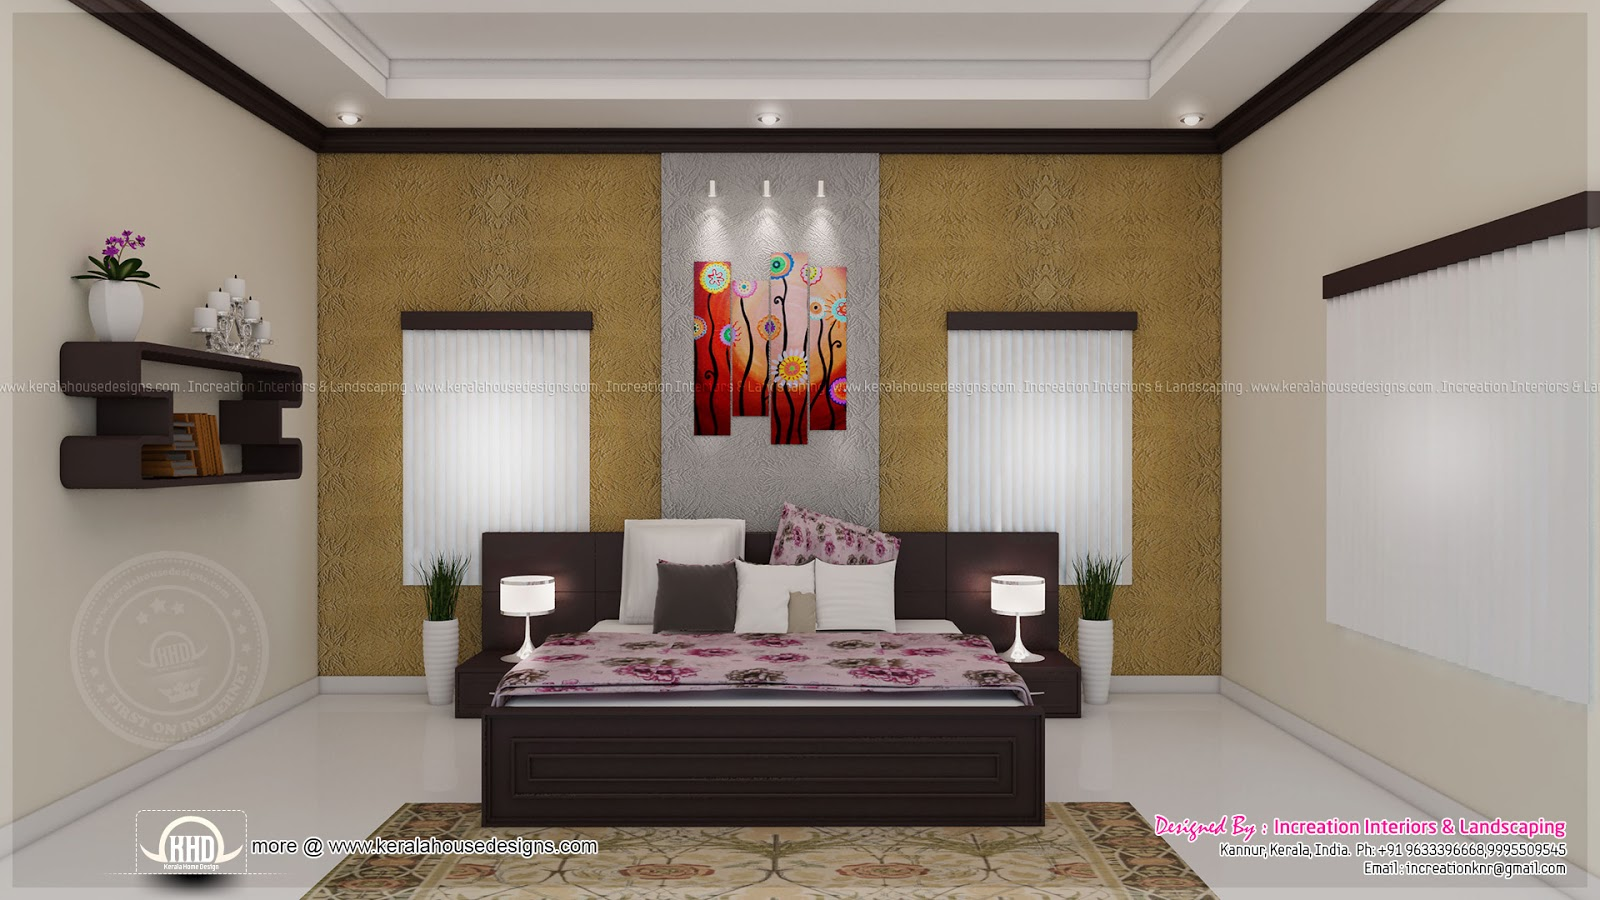 House interior ideas in 3d rendering kerala home design for Home design ideas pictures